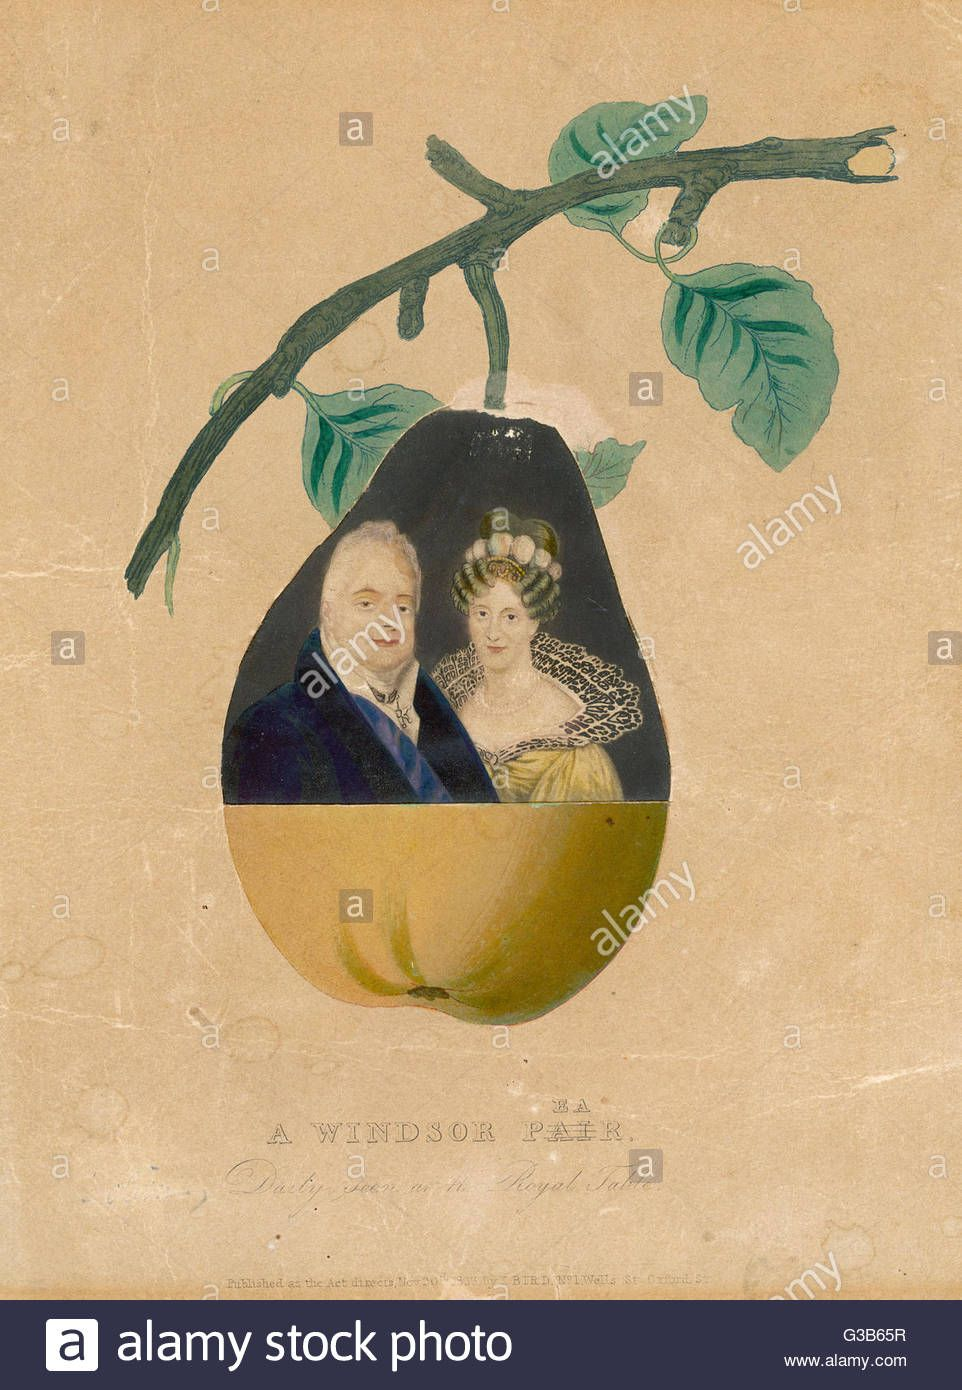 King William IV and Queen Adelaide of Saxe-Meiningen. A Windsor Pear ...